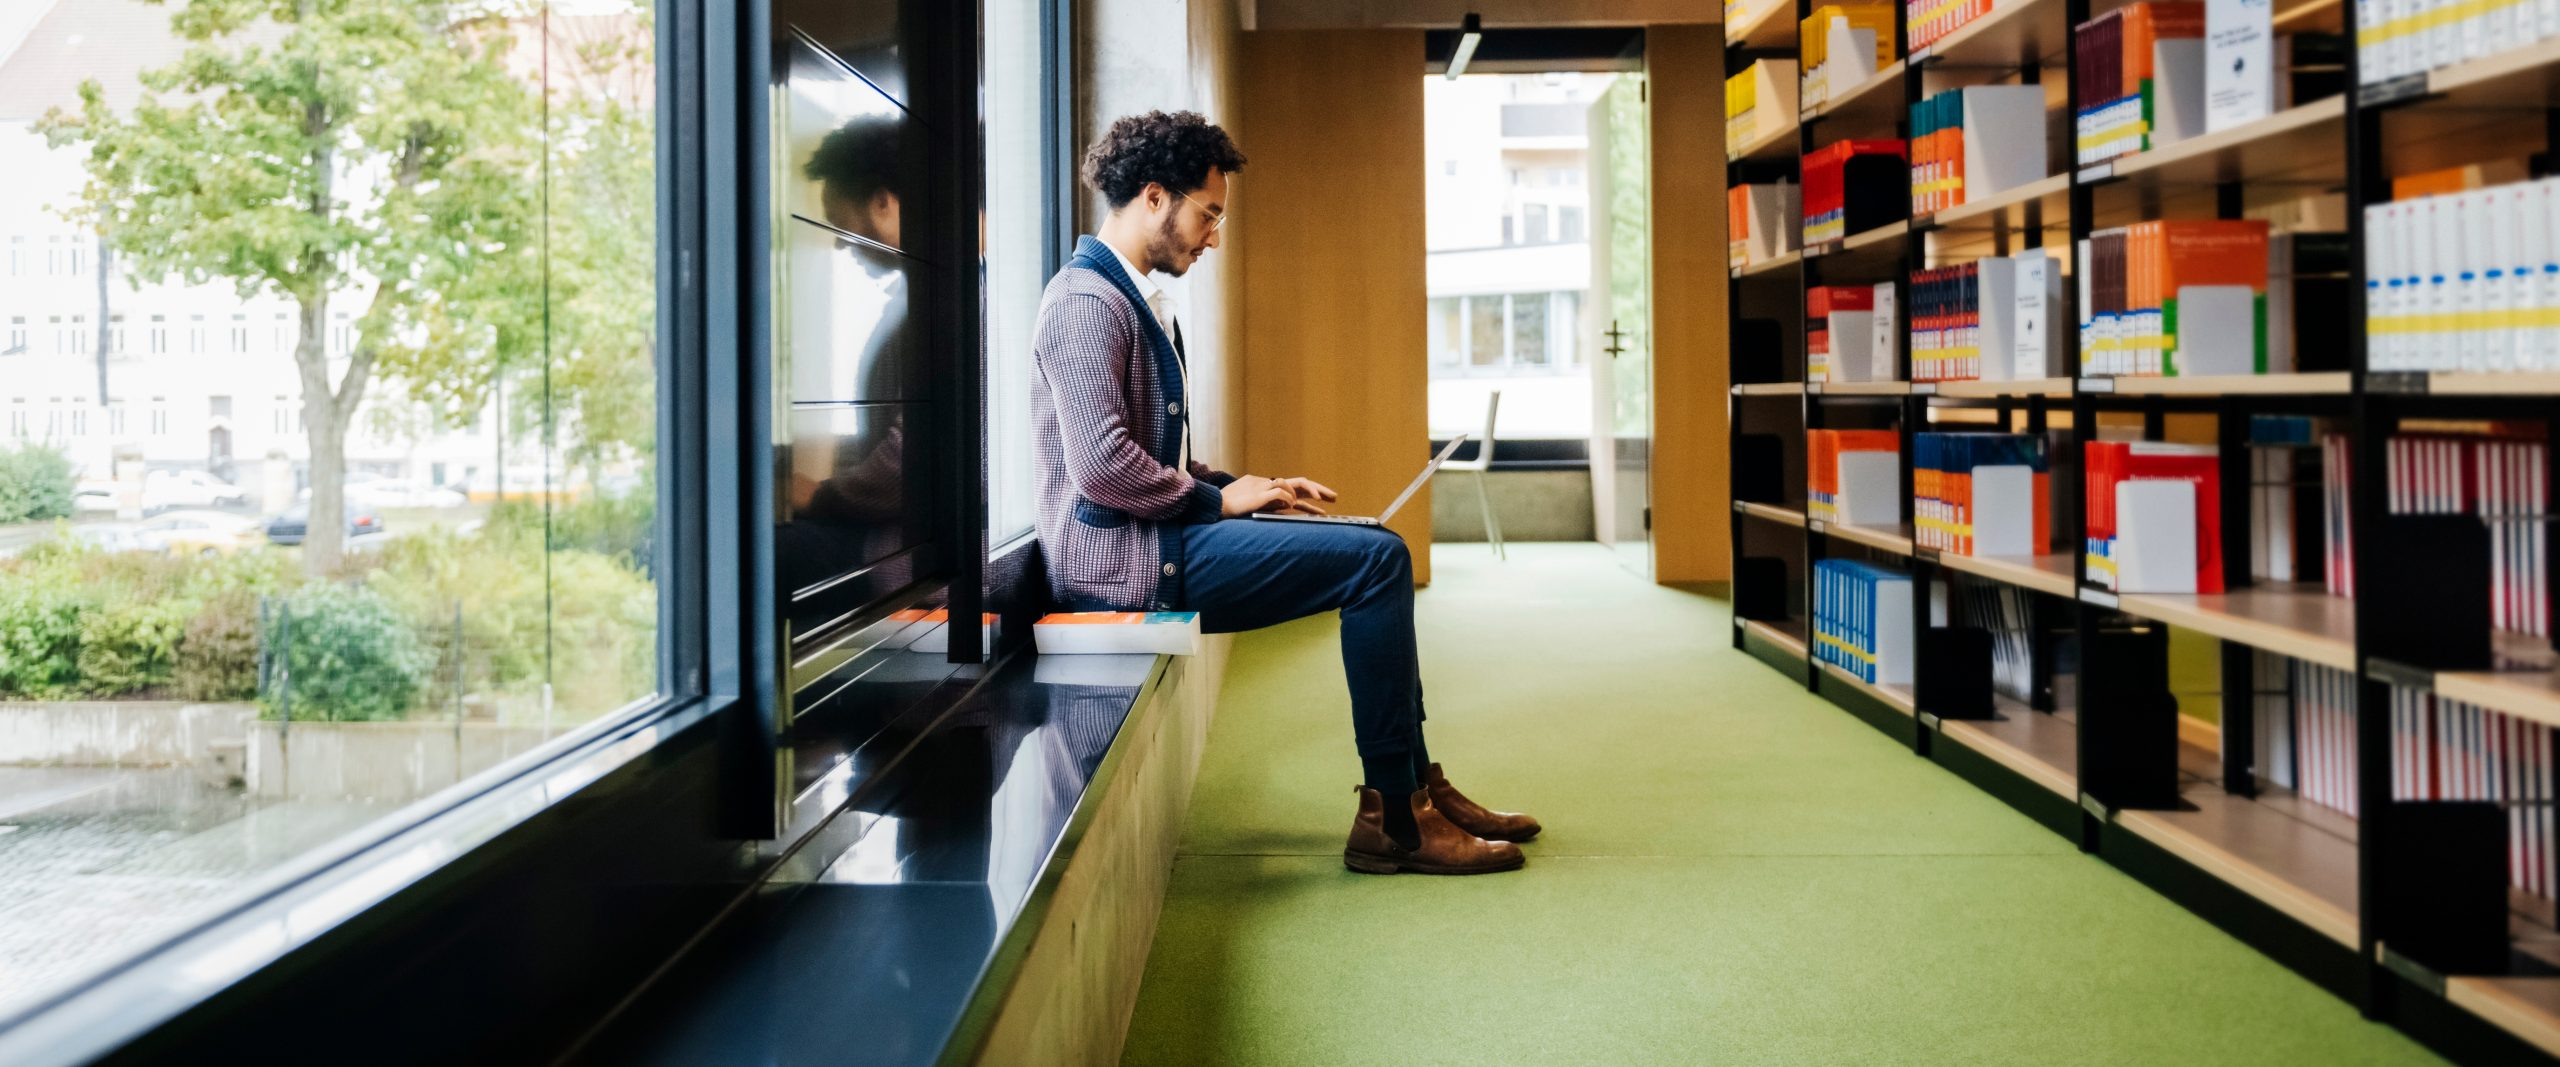 Man on laptop in a library